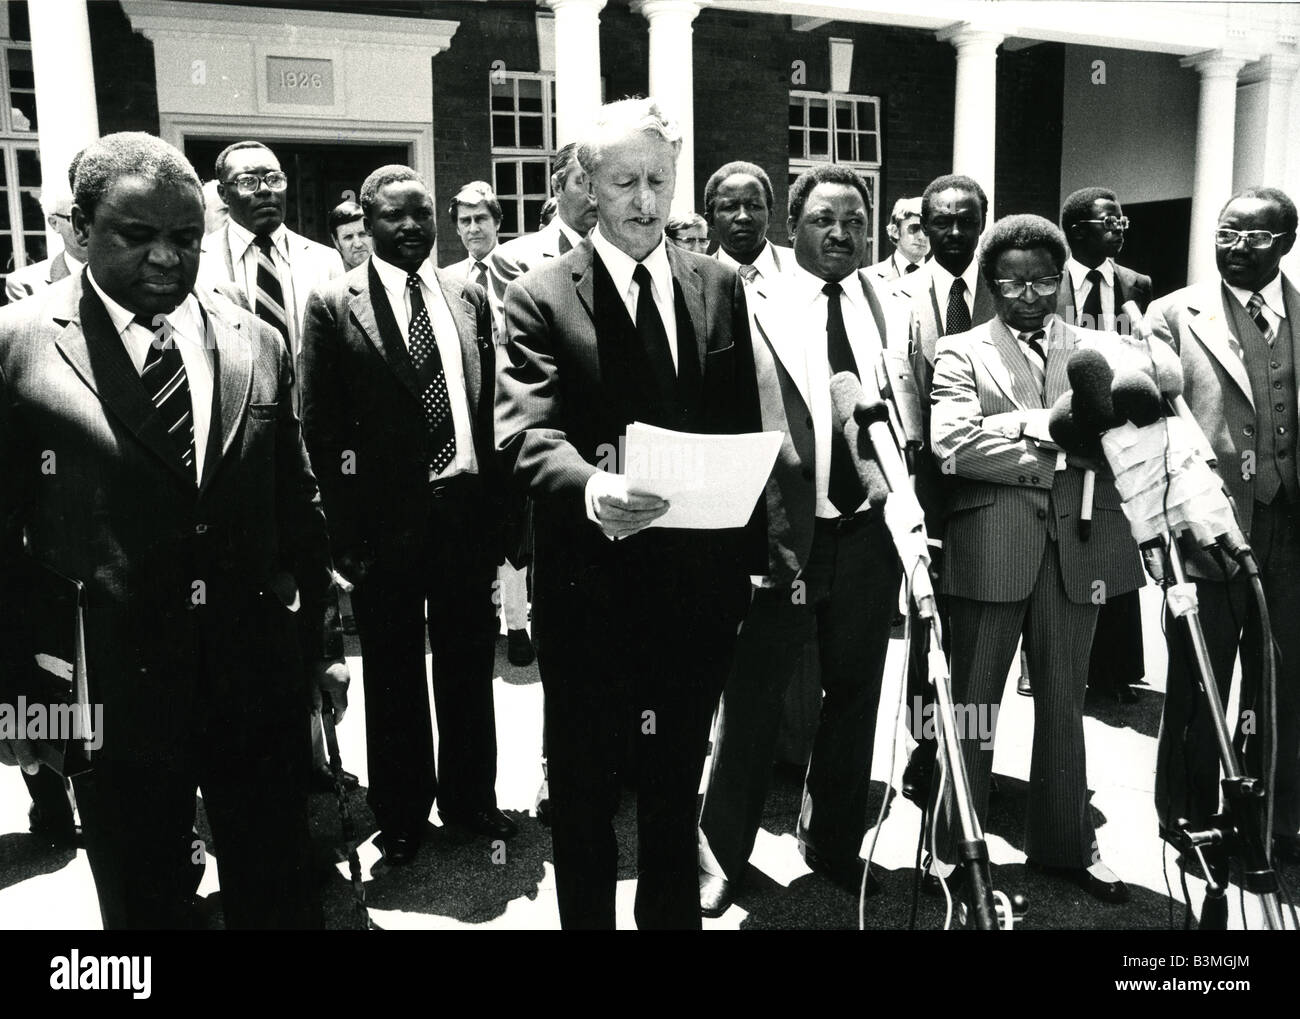 IAN SMITH  Announces an internal settlement for Southern Rhodesia in 1979 - Stock Image